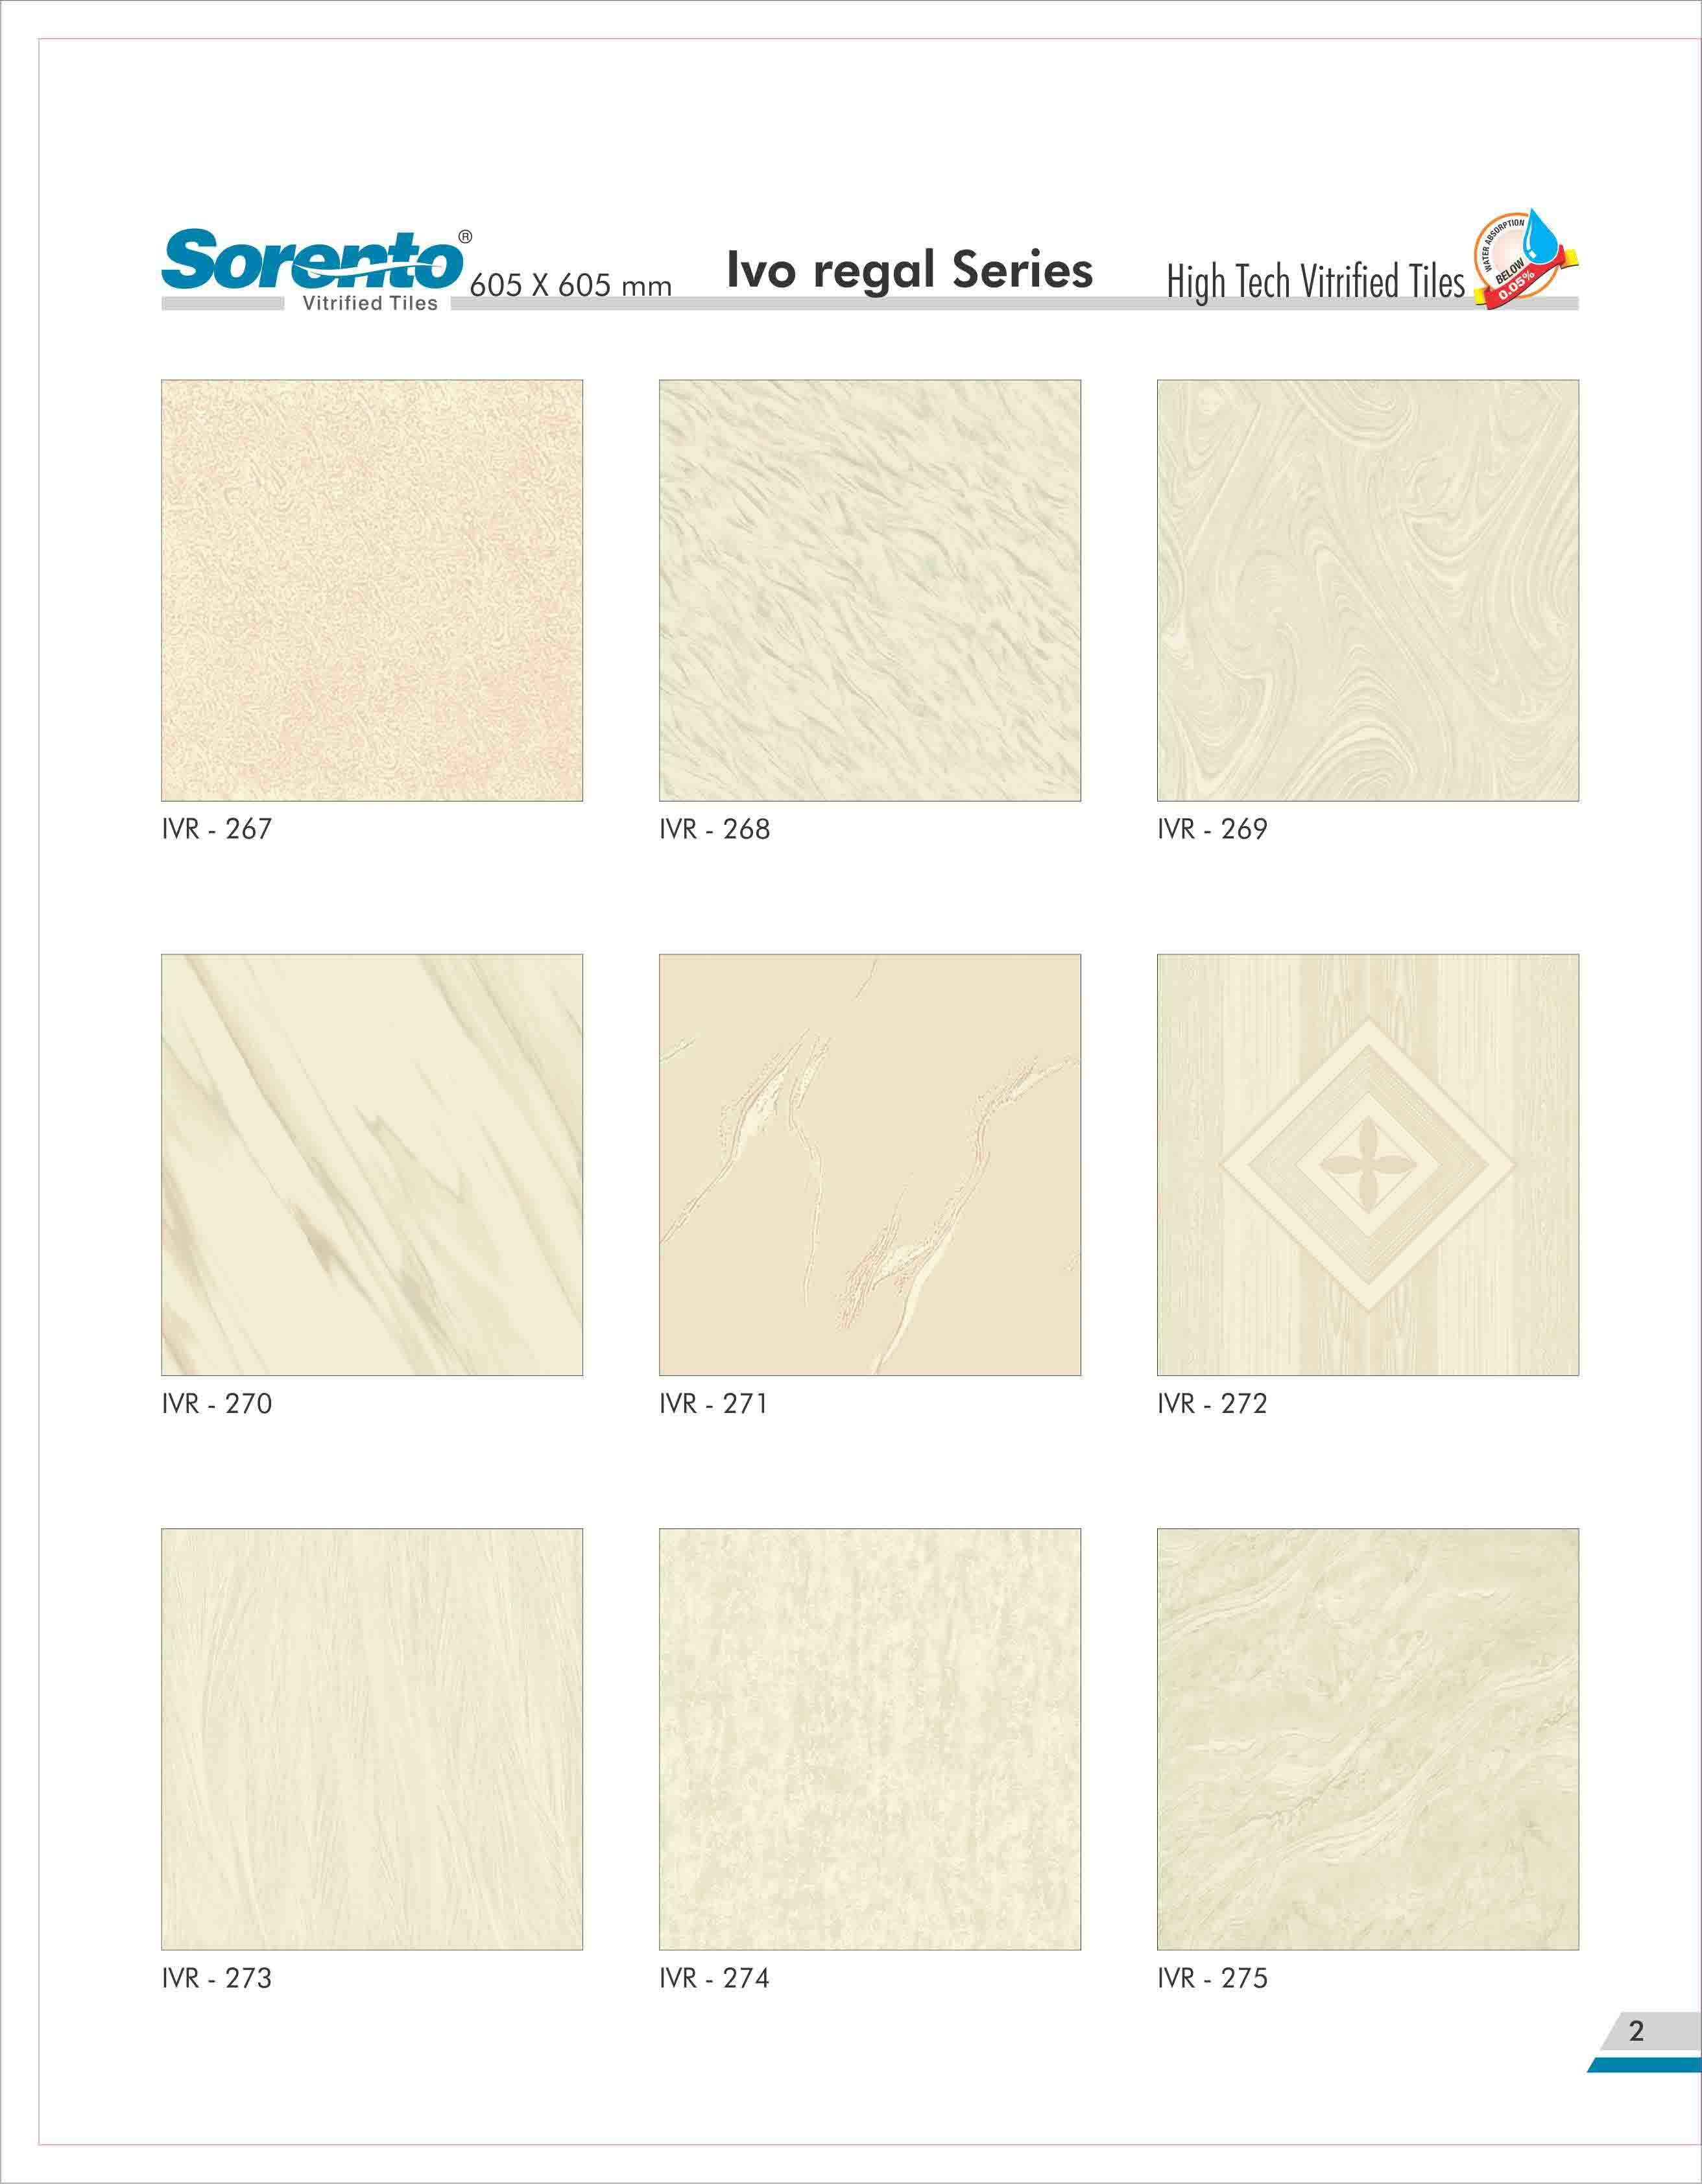 Pin by ceramic directory on sorento granito pvt ltd pinterest ceramic directory ceramic tiles manufacturers importers exporters suppliers dealers tile shop list dailygadgetfo Images